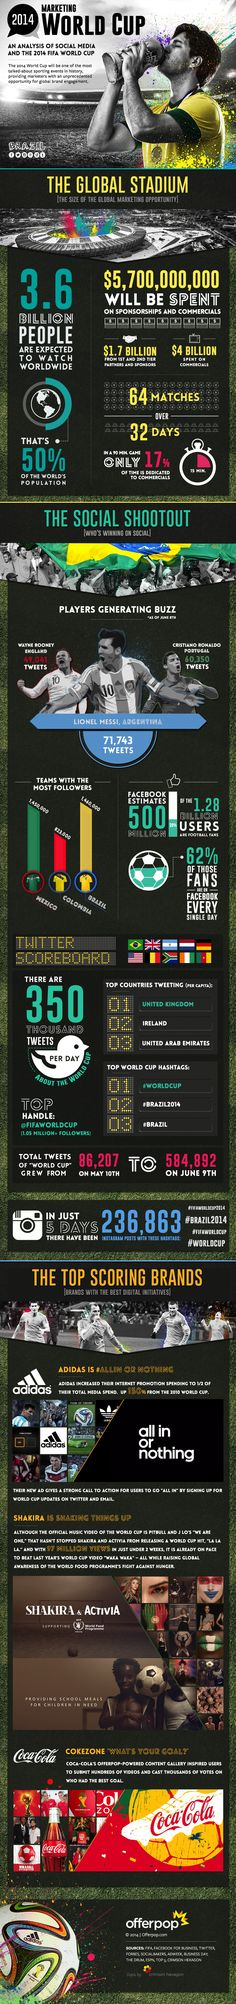 The World Cup and marketing